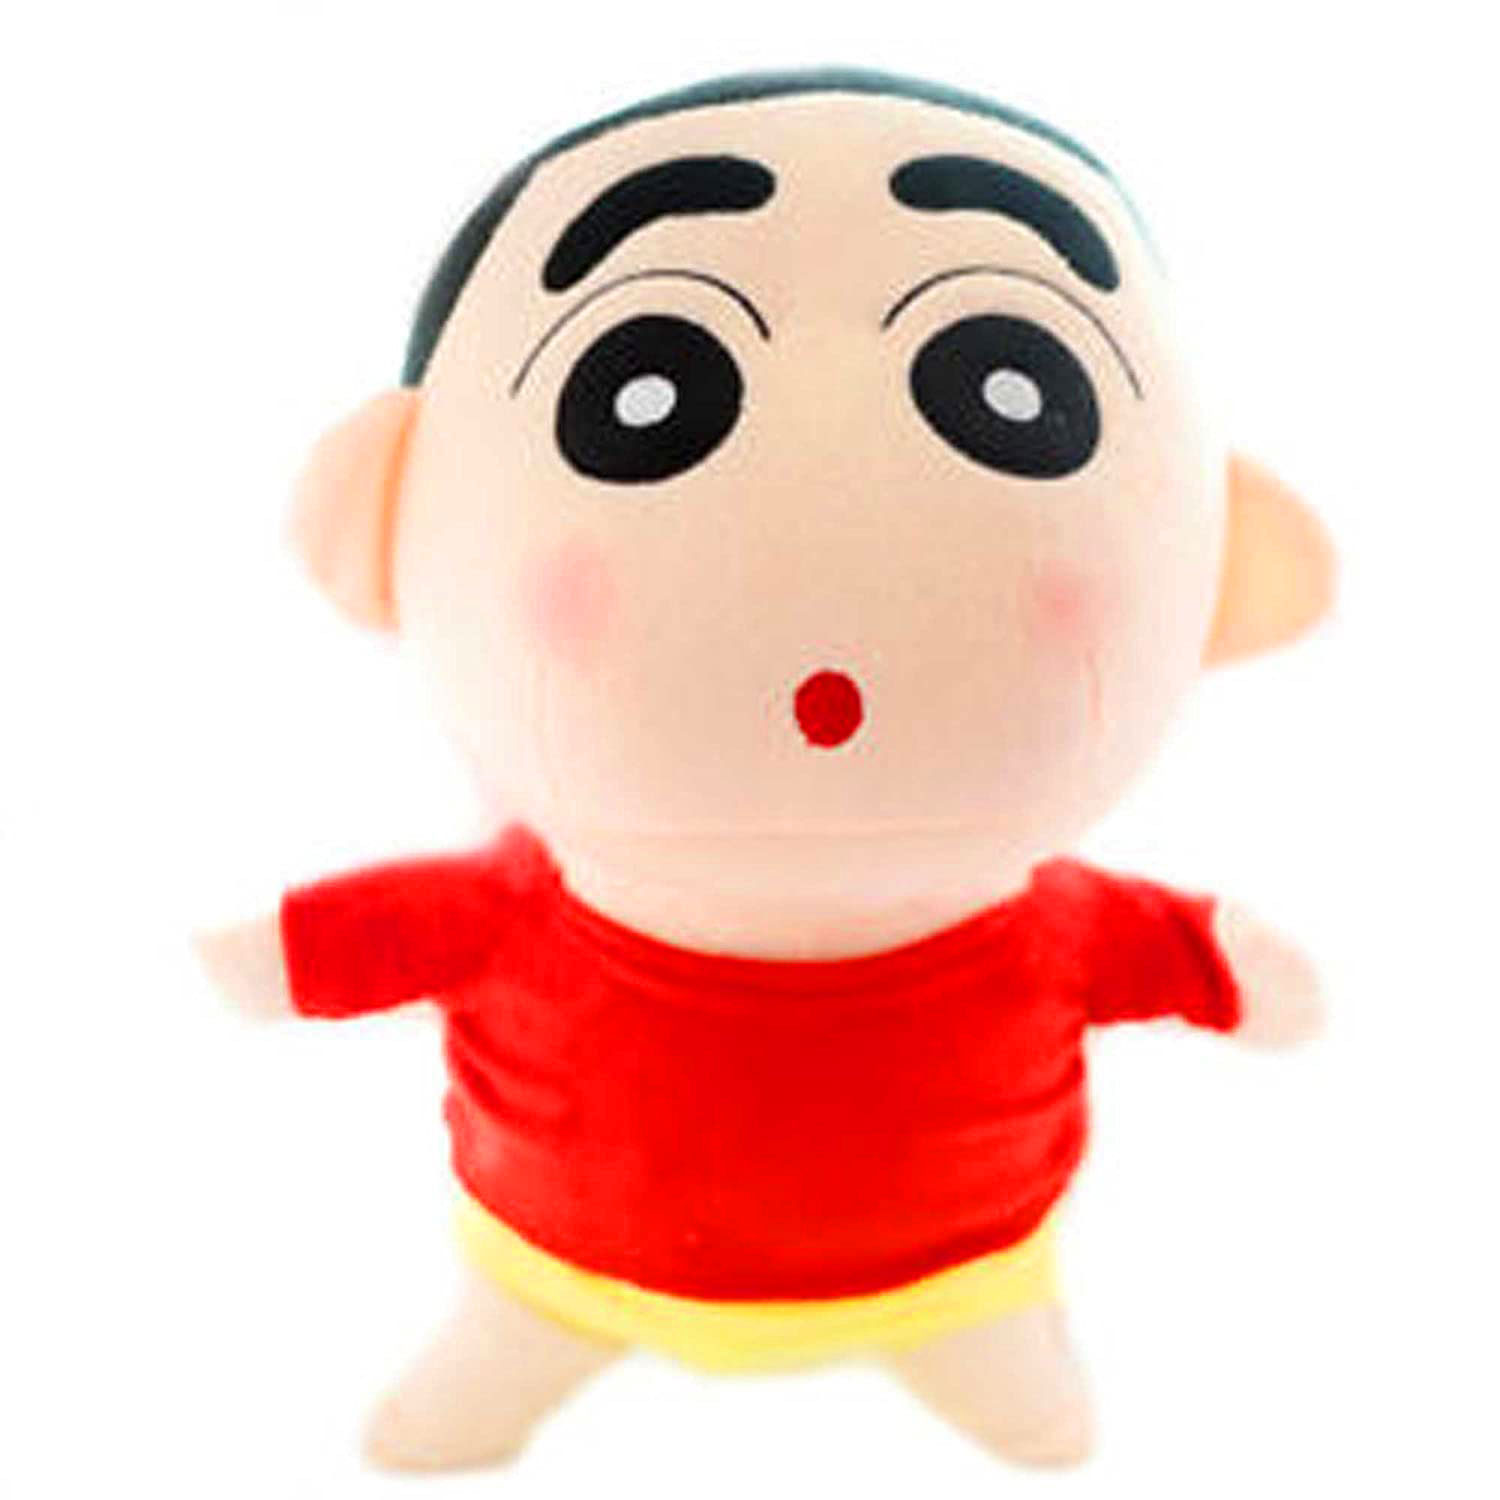 Shinchan Images for best friend